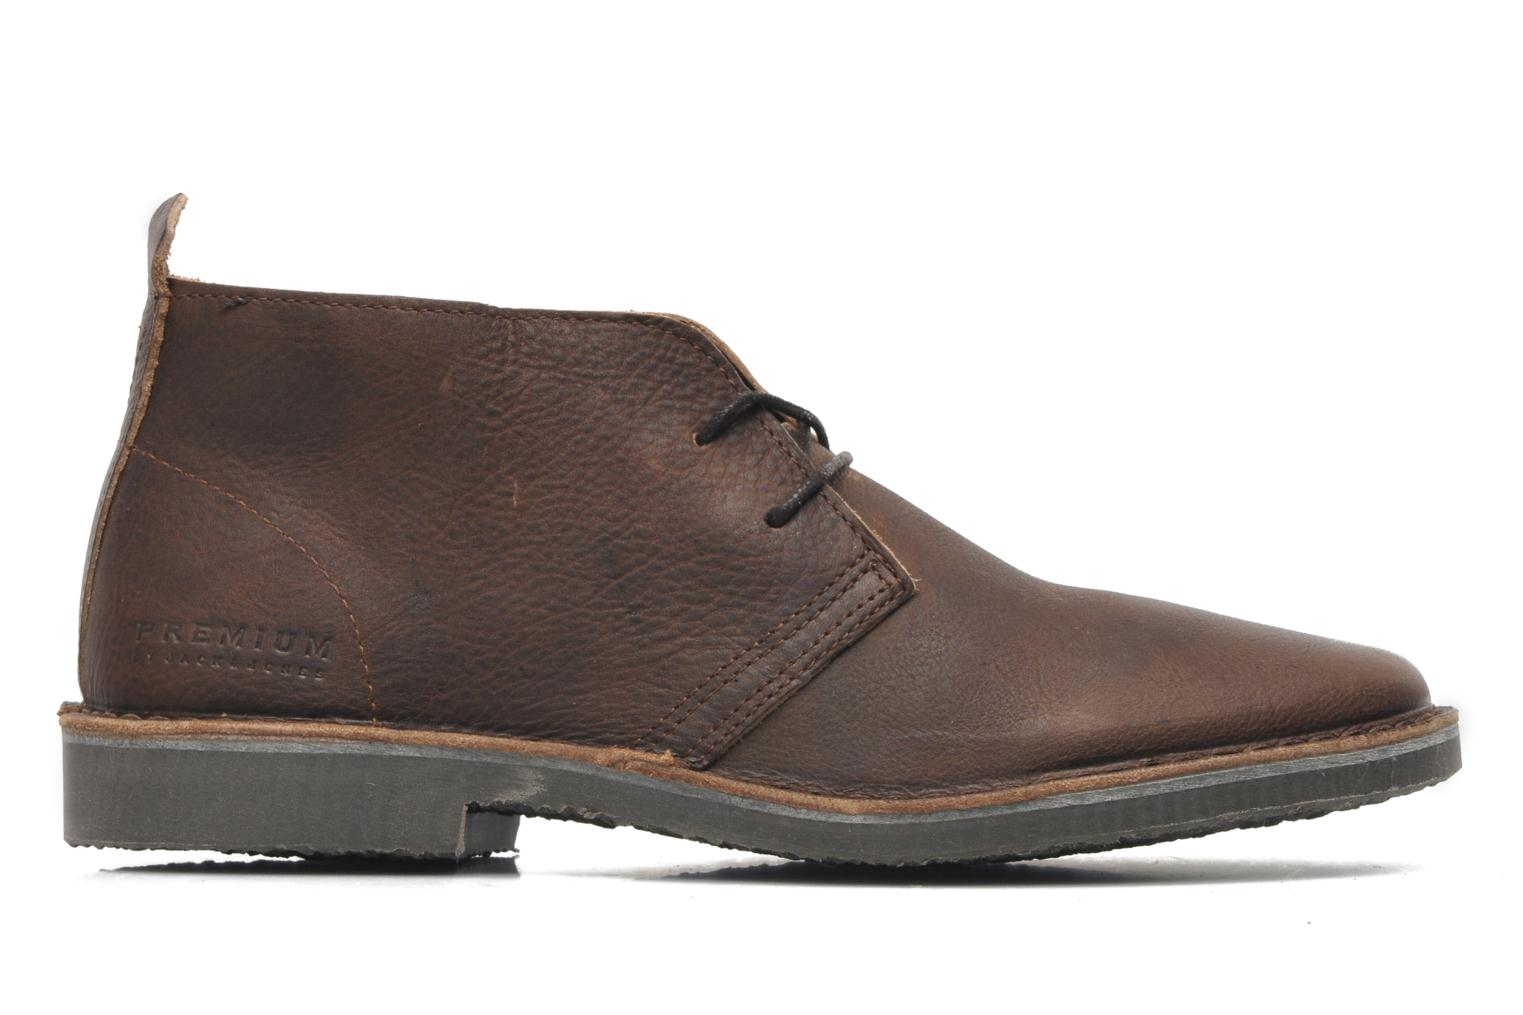 Chaussures à lacets Jack & Jones JJ Gobi Heavy Leather Desert Boot Prm Marron vue derrière